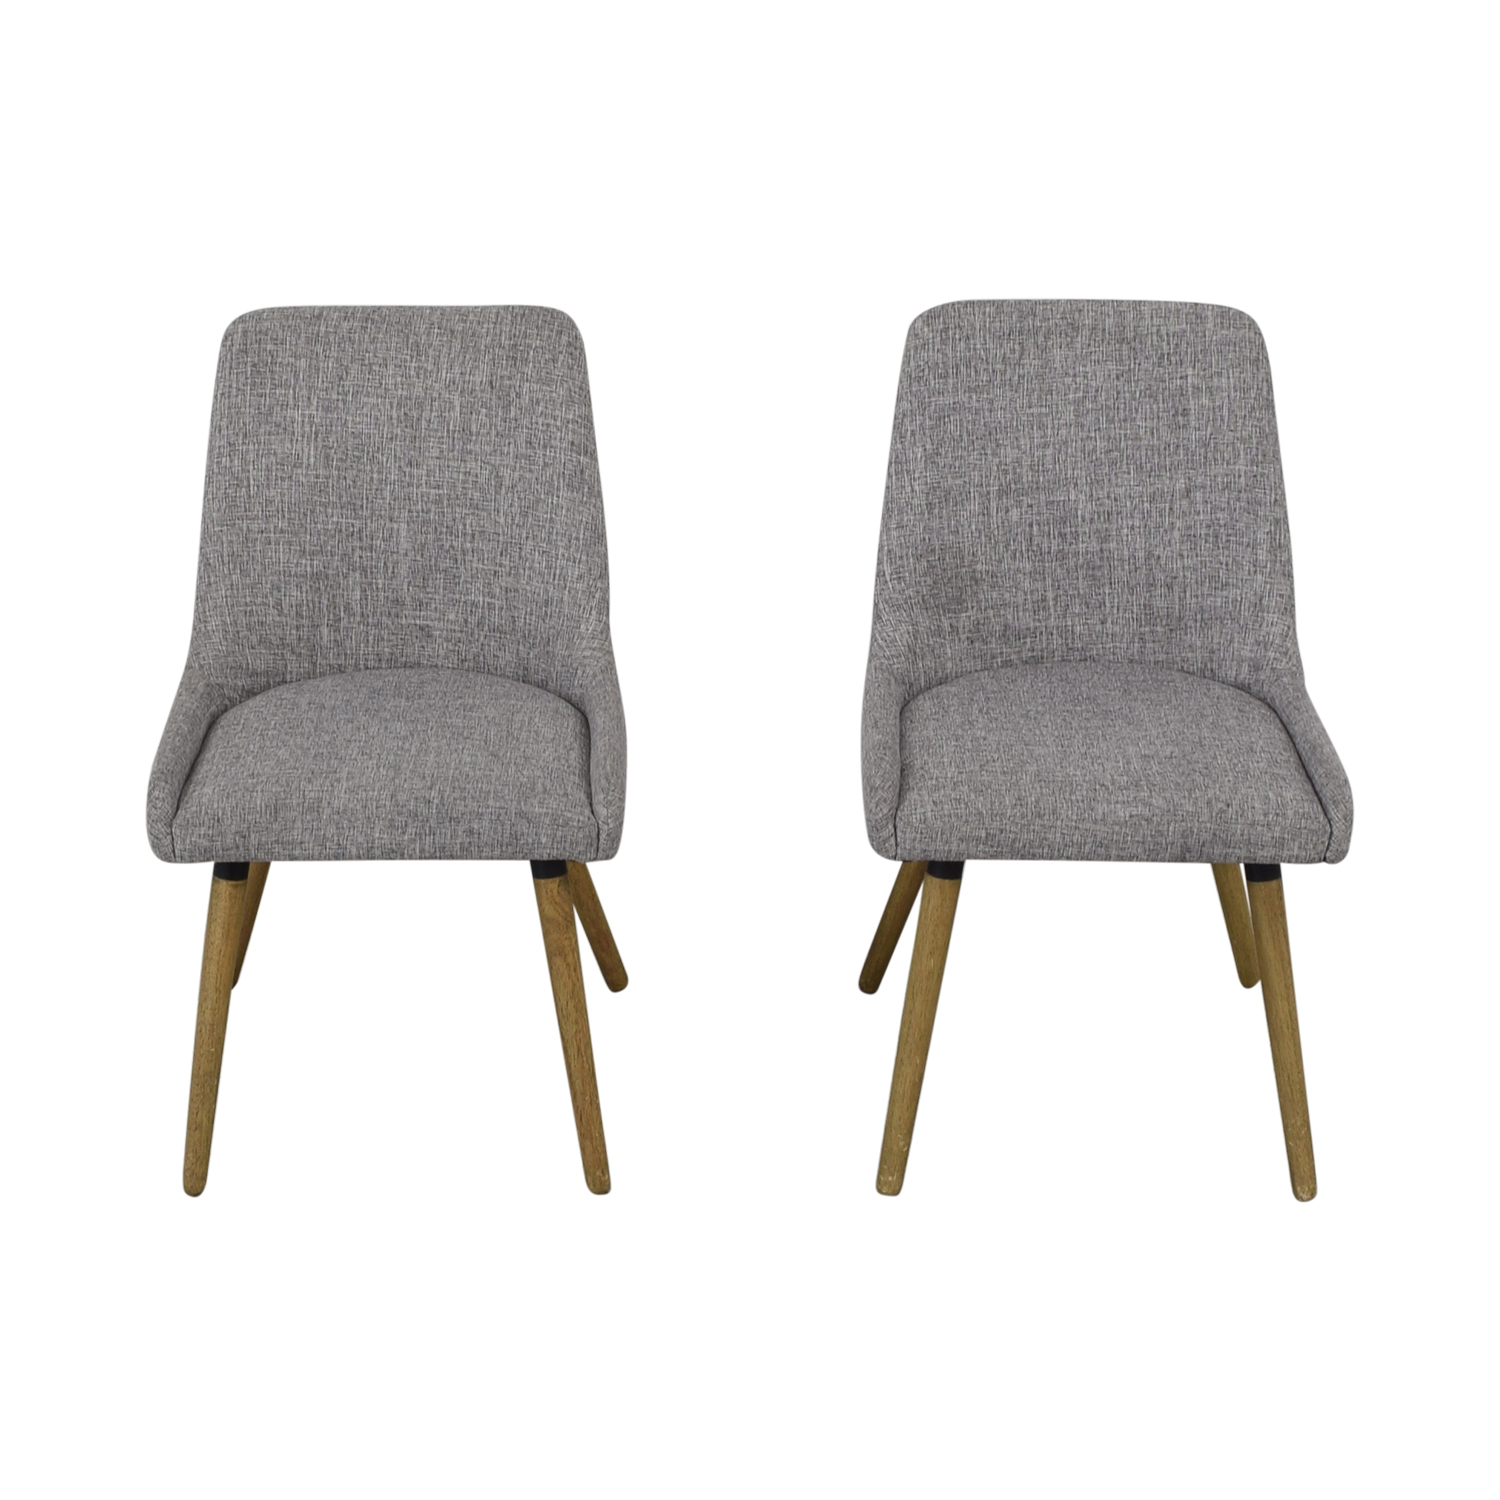 West Elm Mid-Century Upholstered Dining Chairs / Dining Chairs